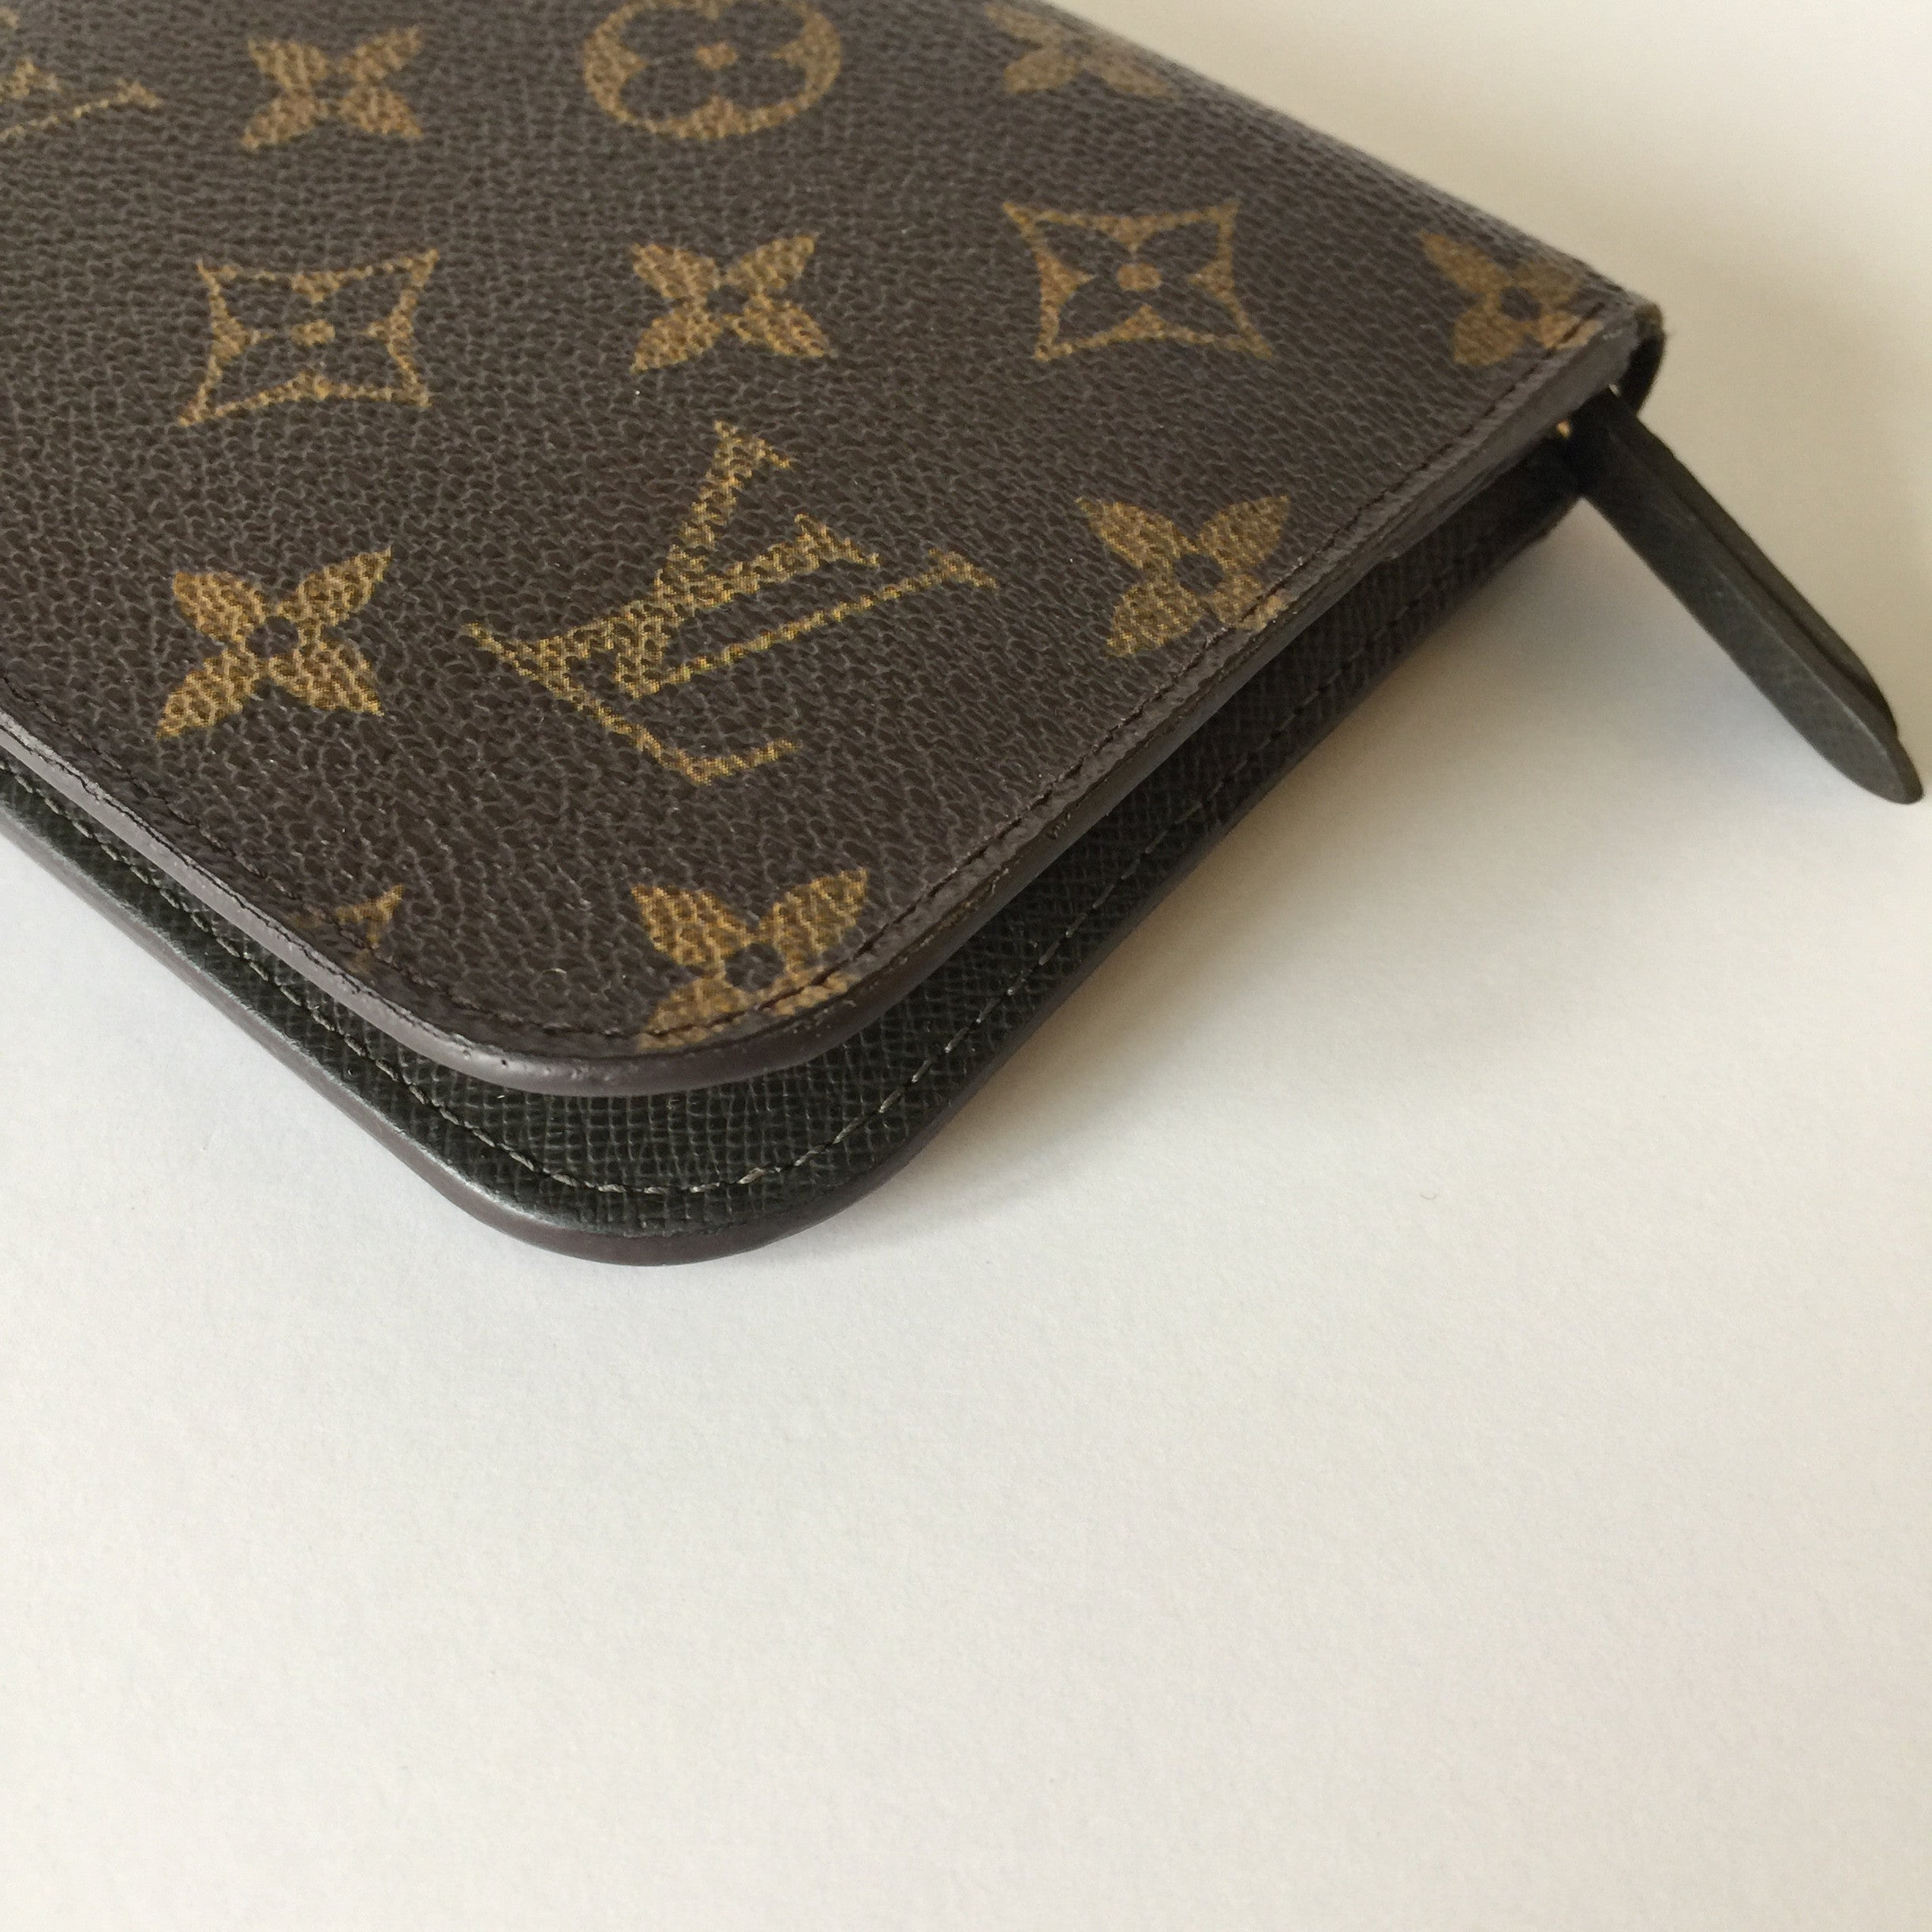 Authentic LOUIS VUITTON Insolite Wallet